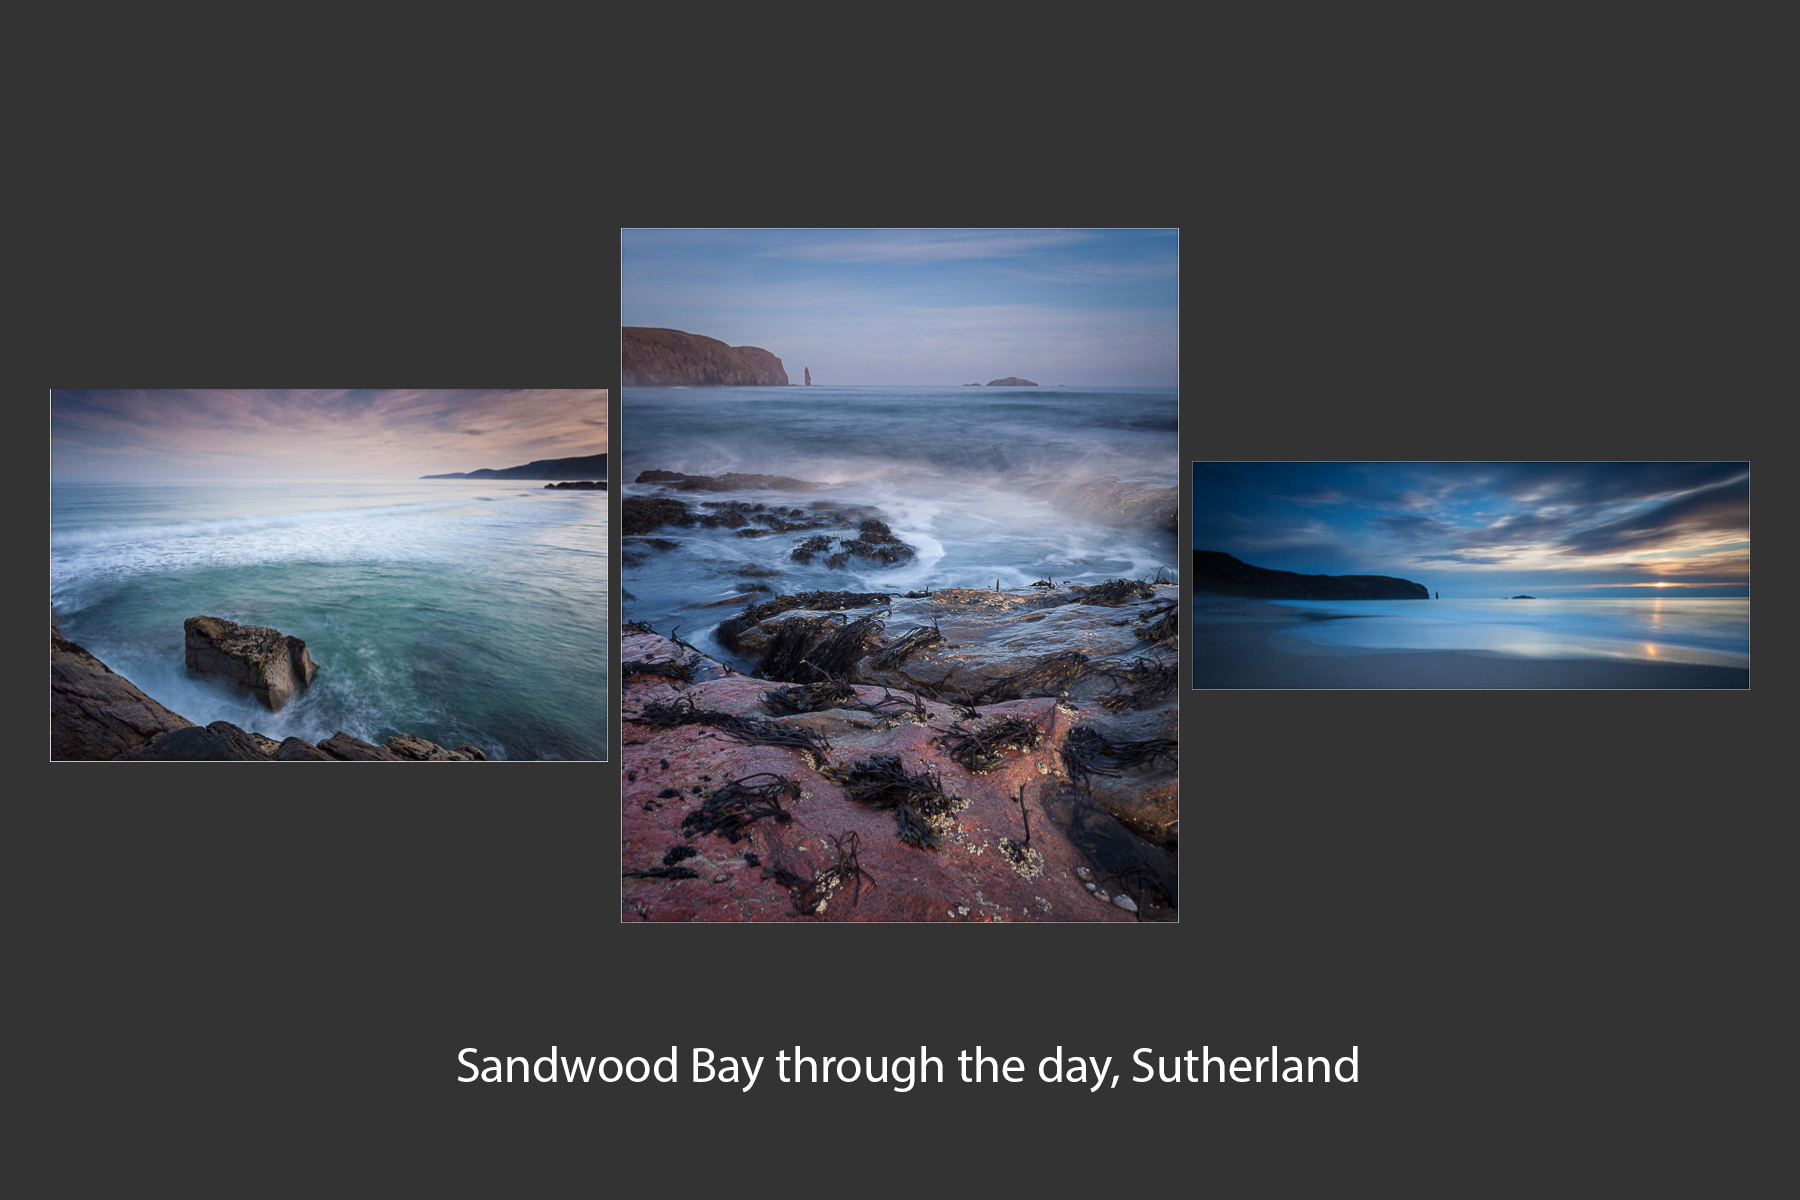 Sandwood Bay through the day, Sutherland by Tom Gardner